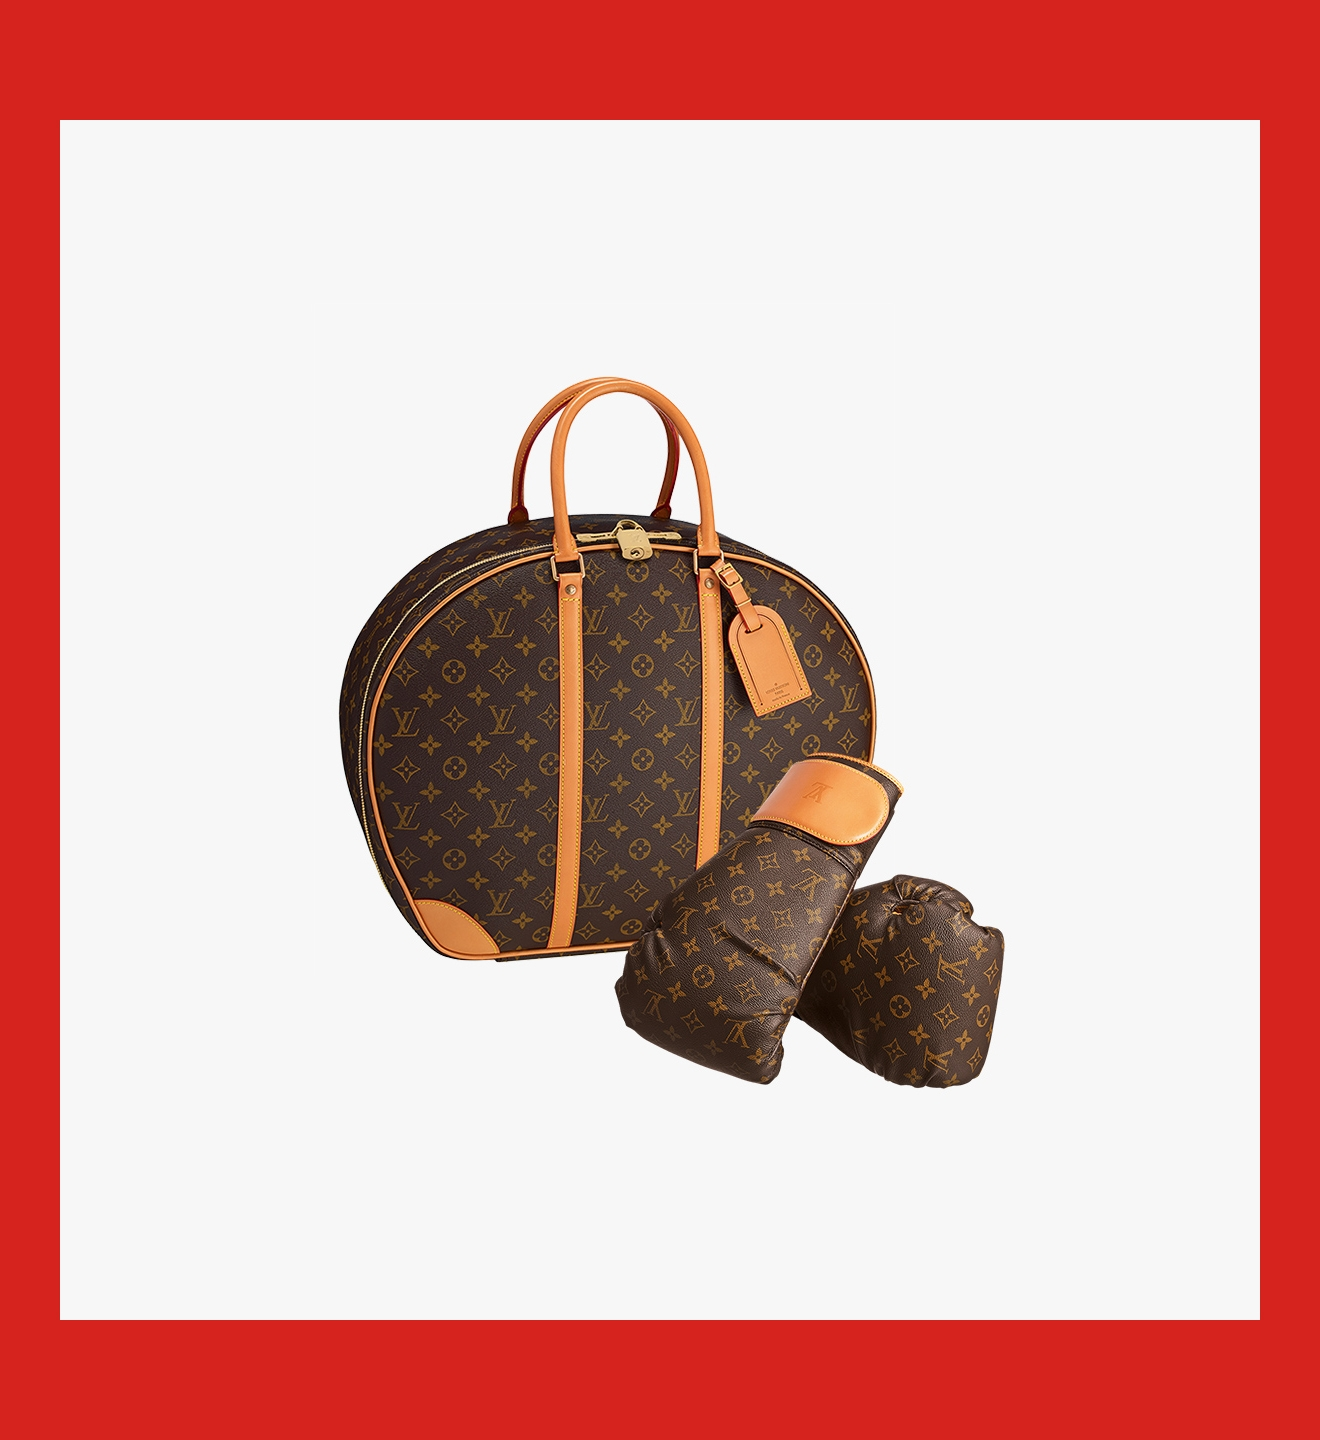 9a45c81ecef8 Louis Vuitton  The Icon and the Iconoclasts  Celebrating Monogram ...